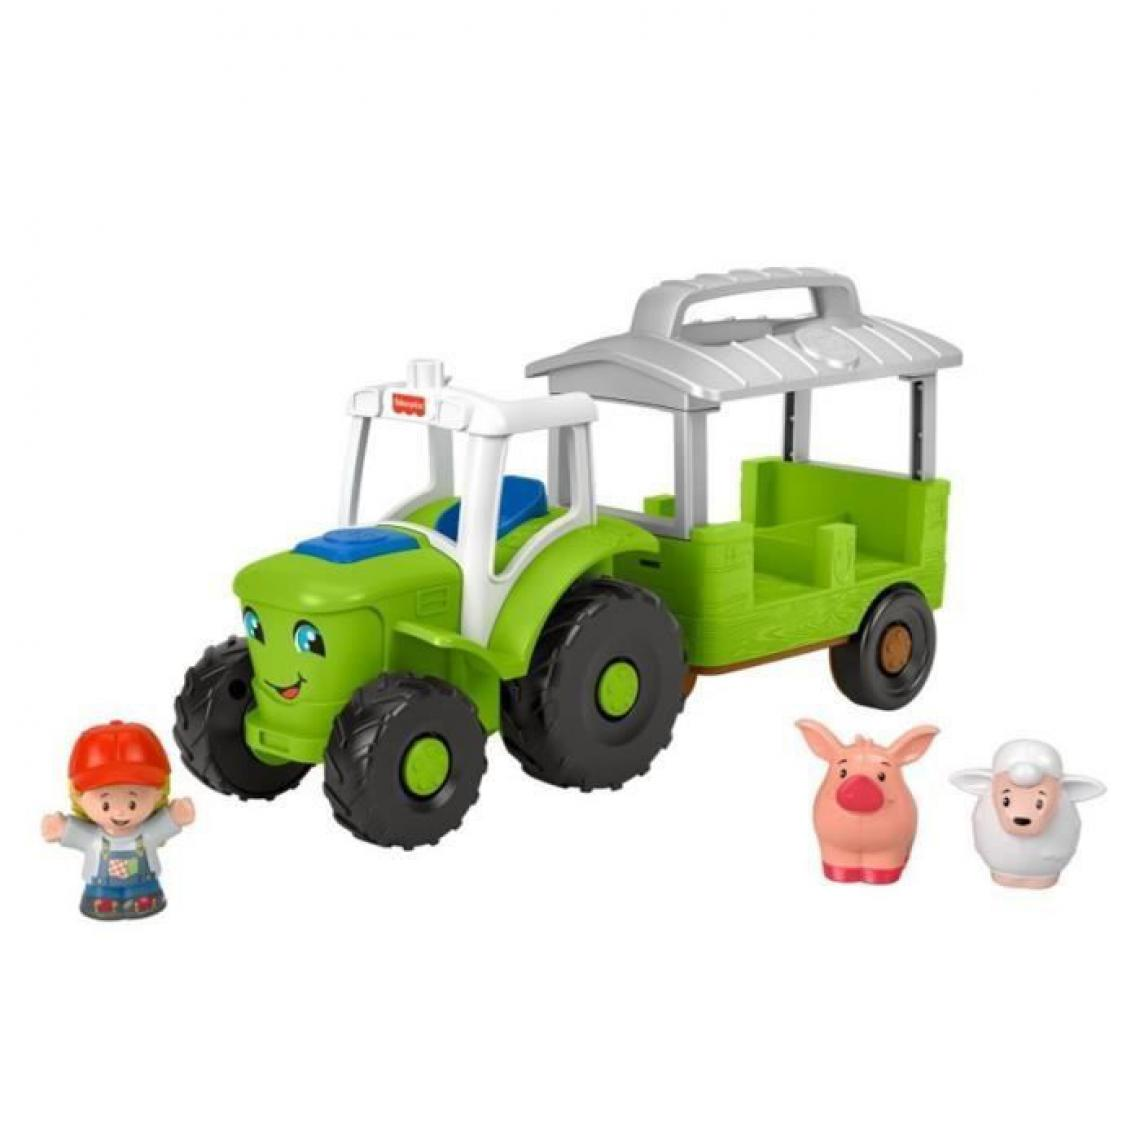 Fisher Price FISHER-PRICE Little People Le Tracteur - de 12 mois a 5 ans